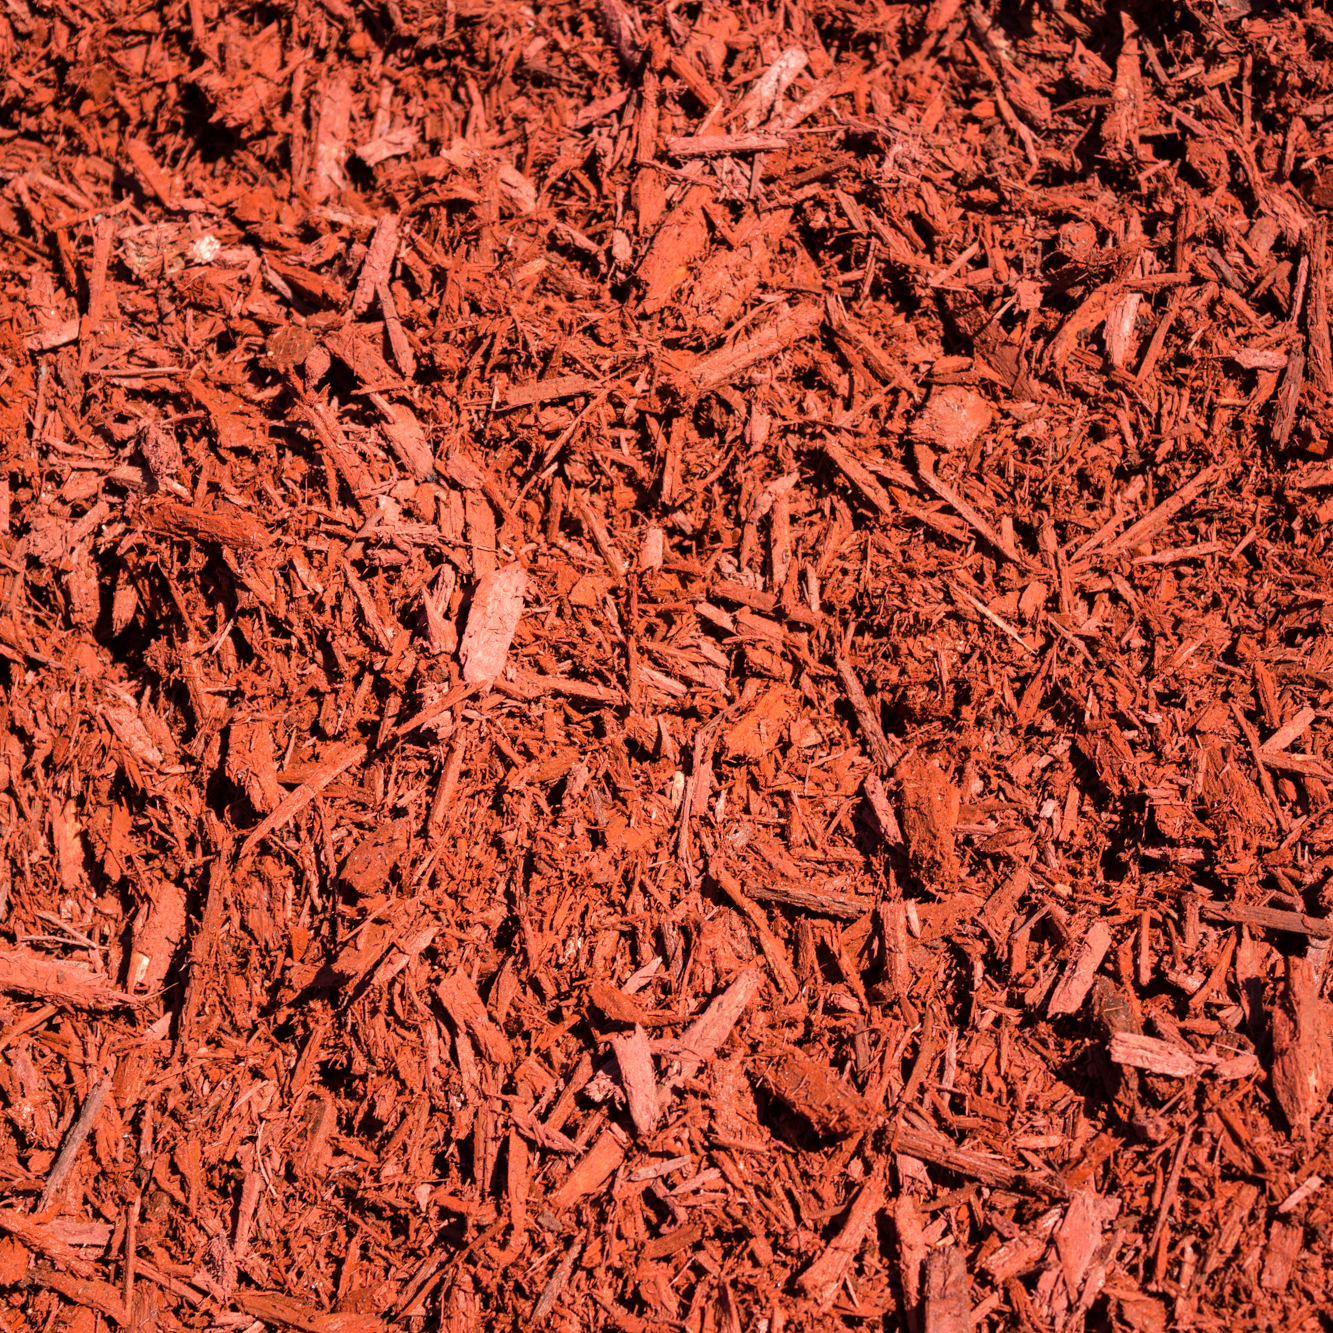 Palo Duro Red MULCH   Composition:  Freshly ground, it is a blazing red color.   Advantages:  Its retains soil moisture, inhibits weed growth, assists in prevention of soil erosion, light and easy to spread, provides a rich manicured look to your landscape, ground on site, and is fresh material.   Applications:  Flowerbed and garden top dressing.   Special Notes:  Spread 3-4 inches.    $35.00 Per Cubic Yard      $4.50 Per 2 Cubic Foot Bag